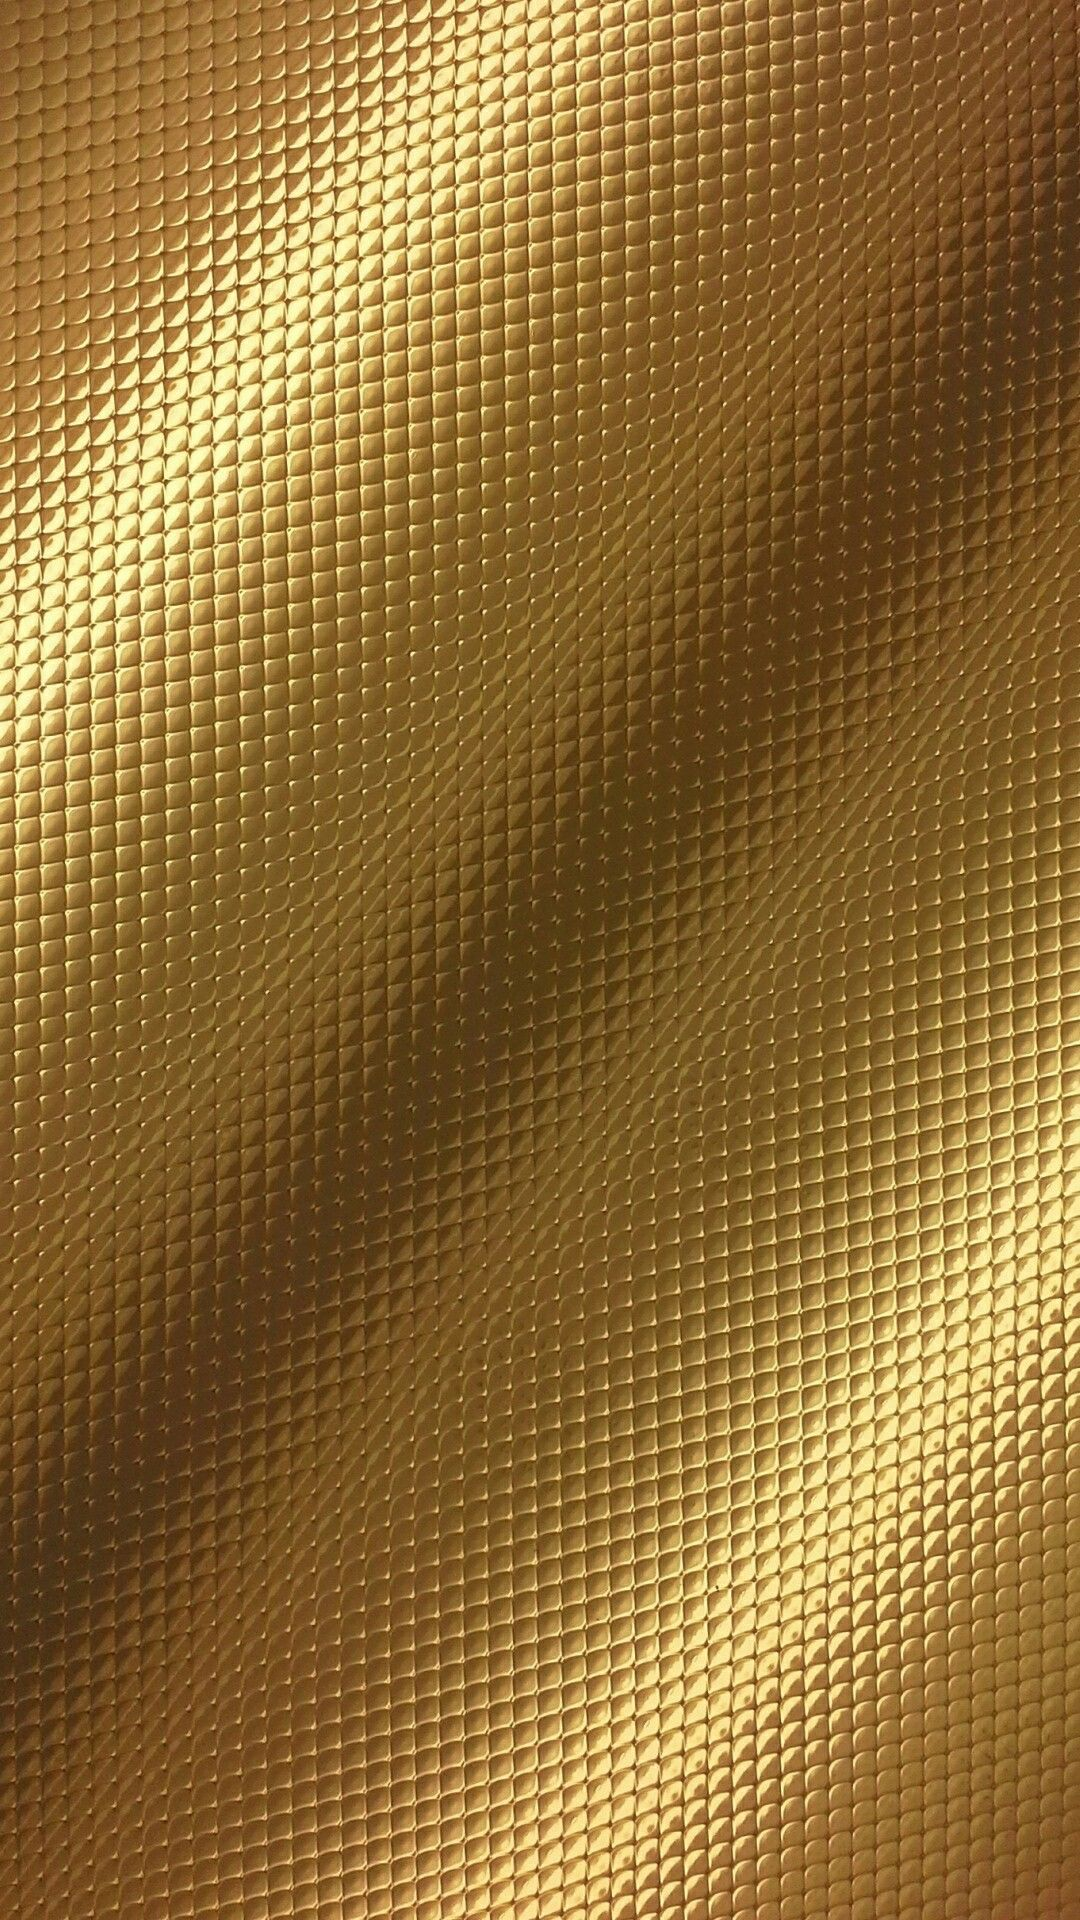 Fondo Dorado Hd Wallpapers For Mobile Wallpaper Iphone 7 Cellphone